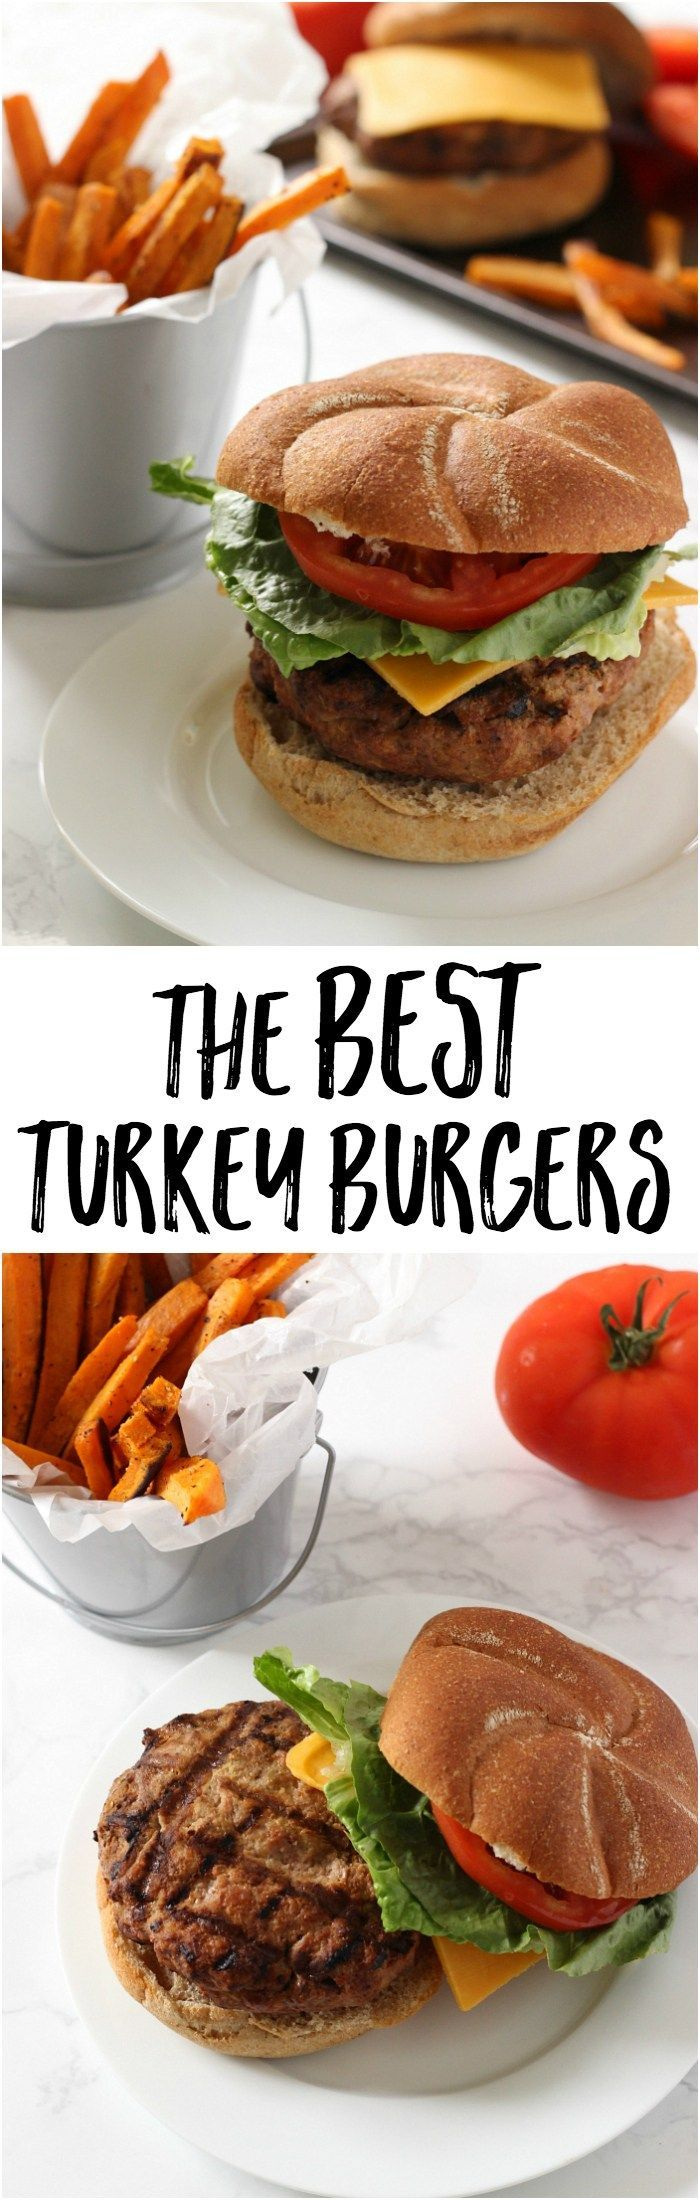 The Best Turkey Burger on Pinterest